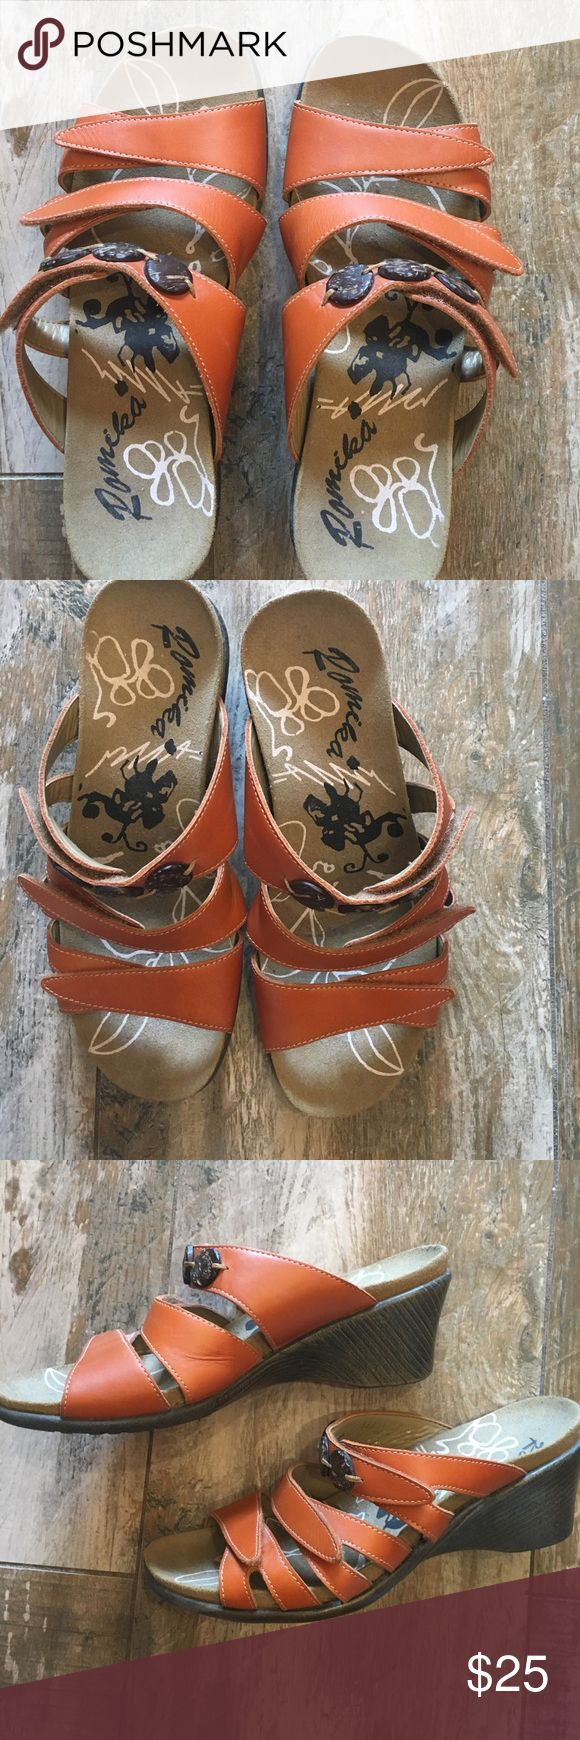 Rominka sandals. Well Minka sandals. In EUC. These sandals are adorable and comfortable. Size 7. romika Shoes Sandals